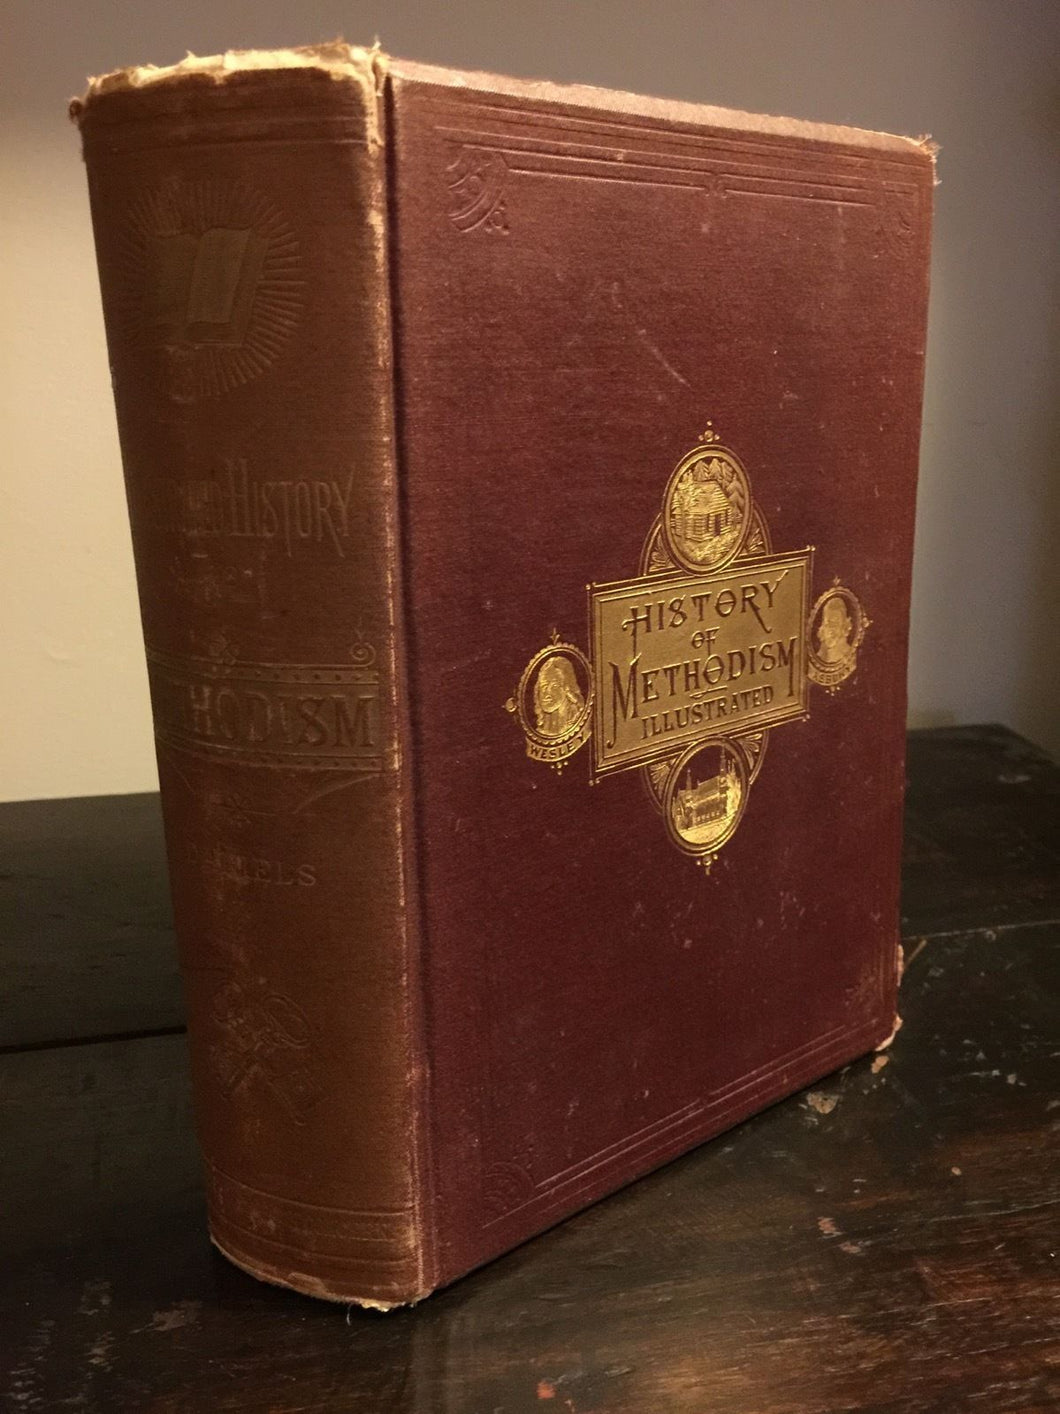 THE HISTORY OF METHODISM ILLUSTRATED Rev. W. Daniels 1879 w/ 250 Engravings Maps